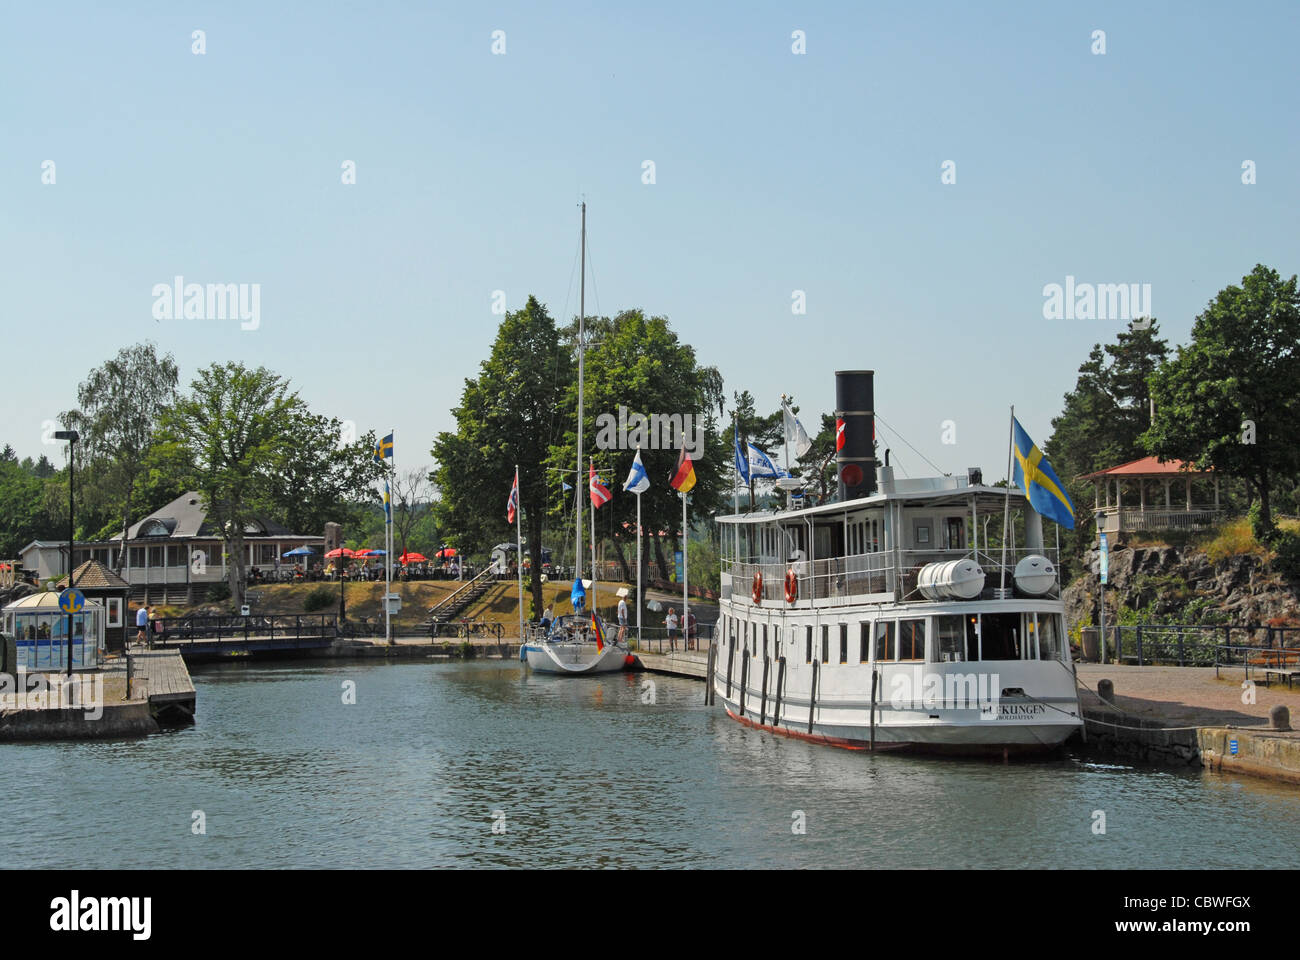 Cruising the Göta Kanal, MS Juno passes Trollhättan lock and docks at the upper bassin - Stock Image